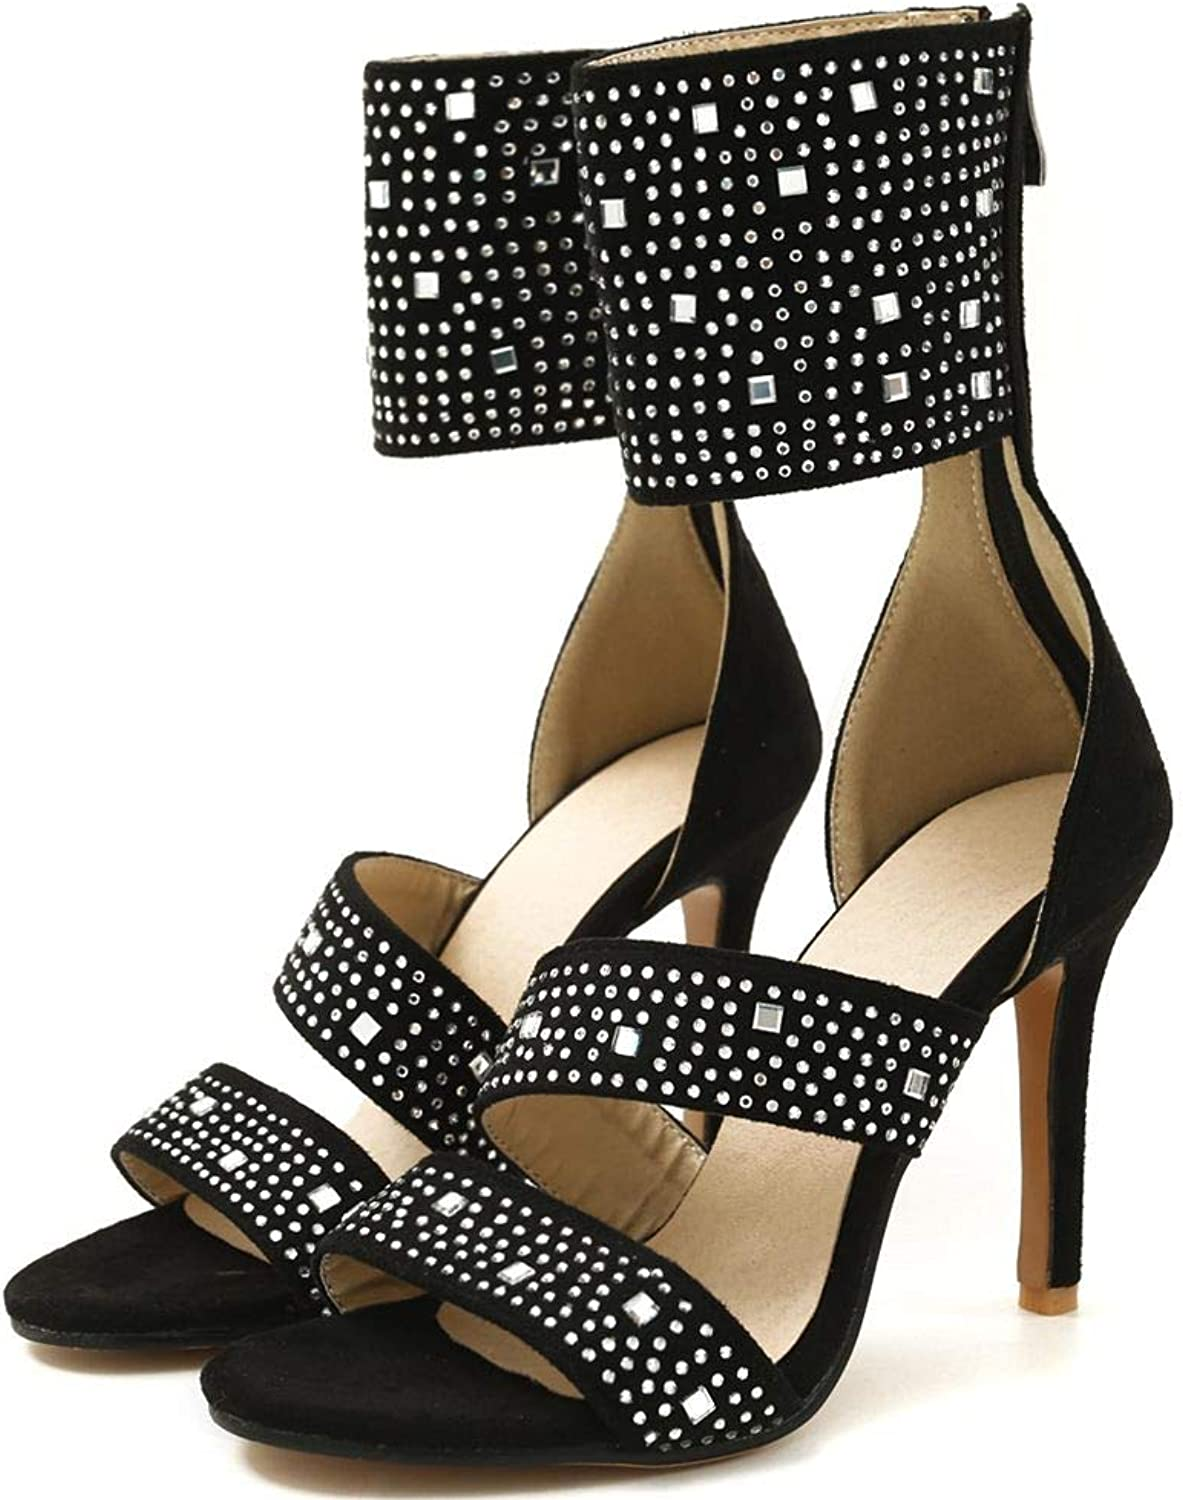 DoraTasia Fashion Open Toe High Heel Sandals for Women Sexy Dress Stiletto shoes Pearl and Rivet Decoraction